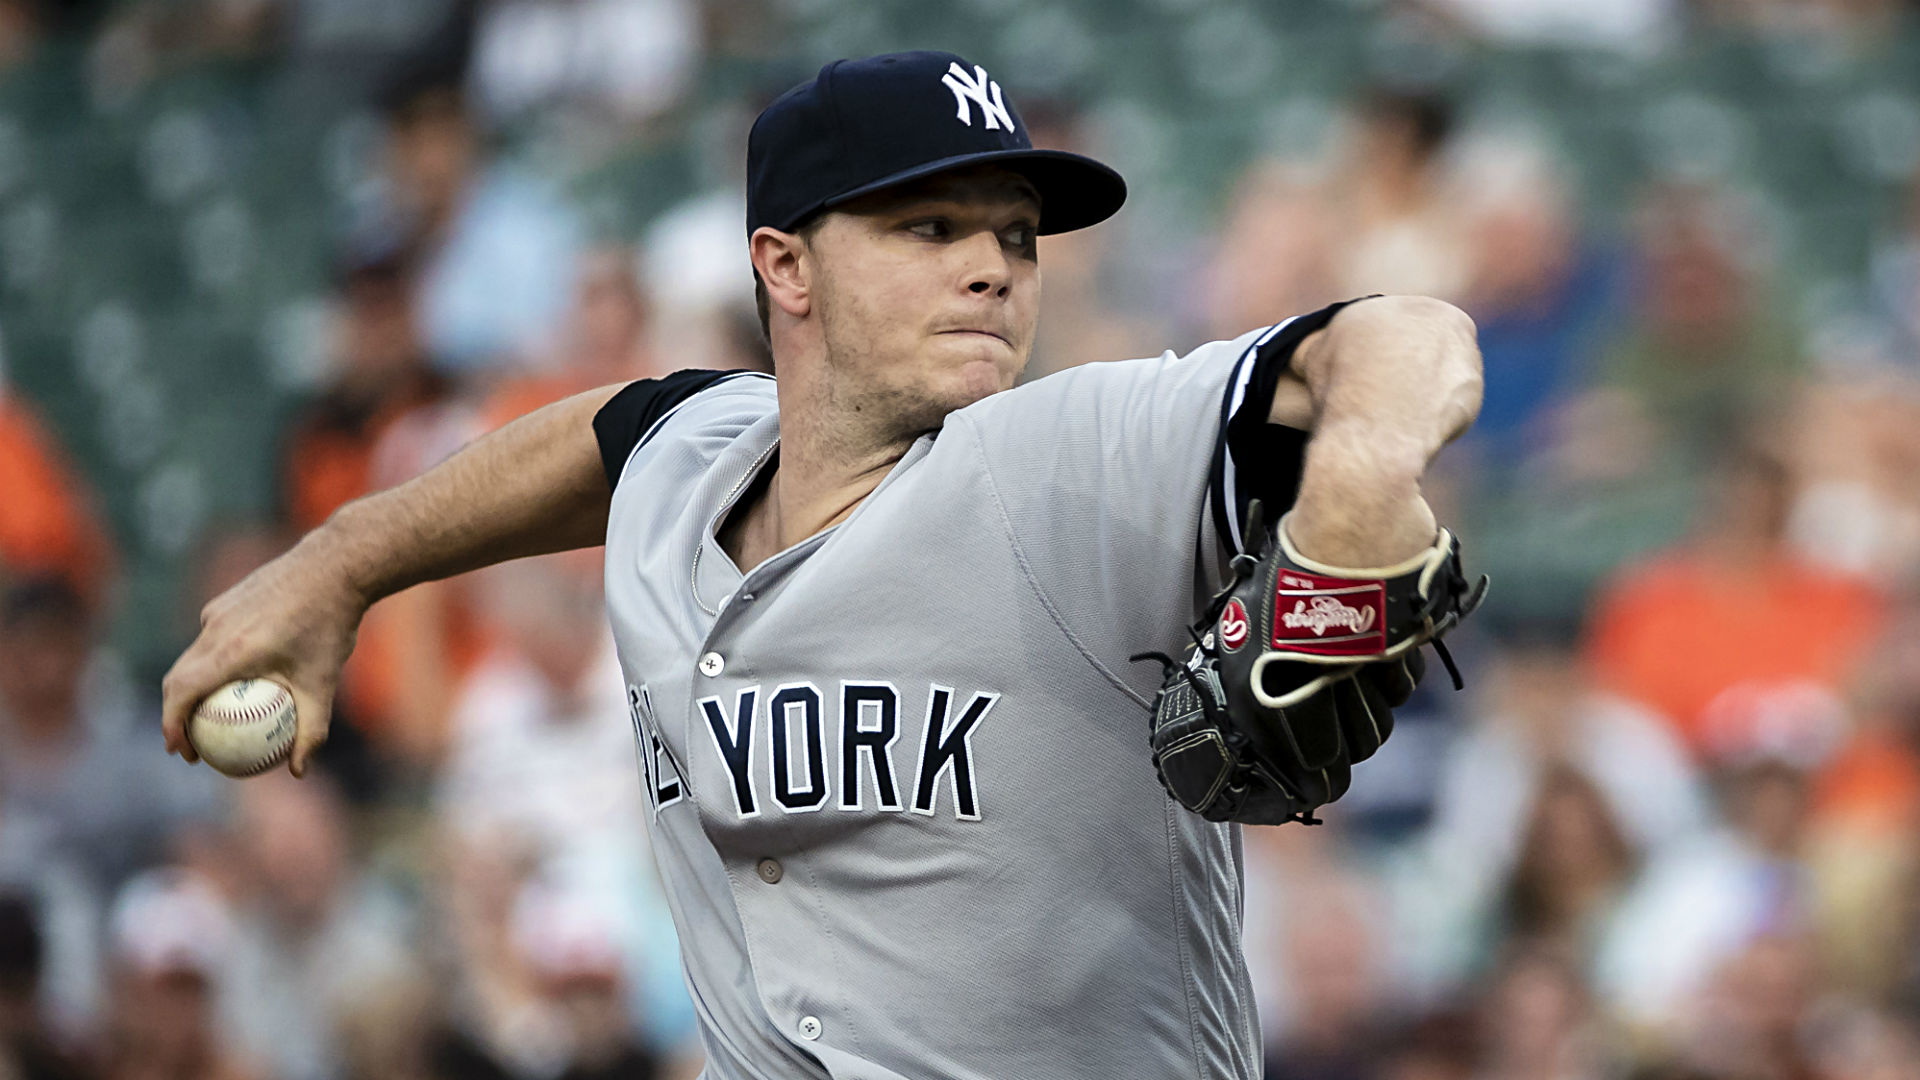 Yankees Trade Sonny Gray to Cincinnati Reds, Expected to Sign Extension